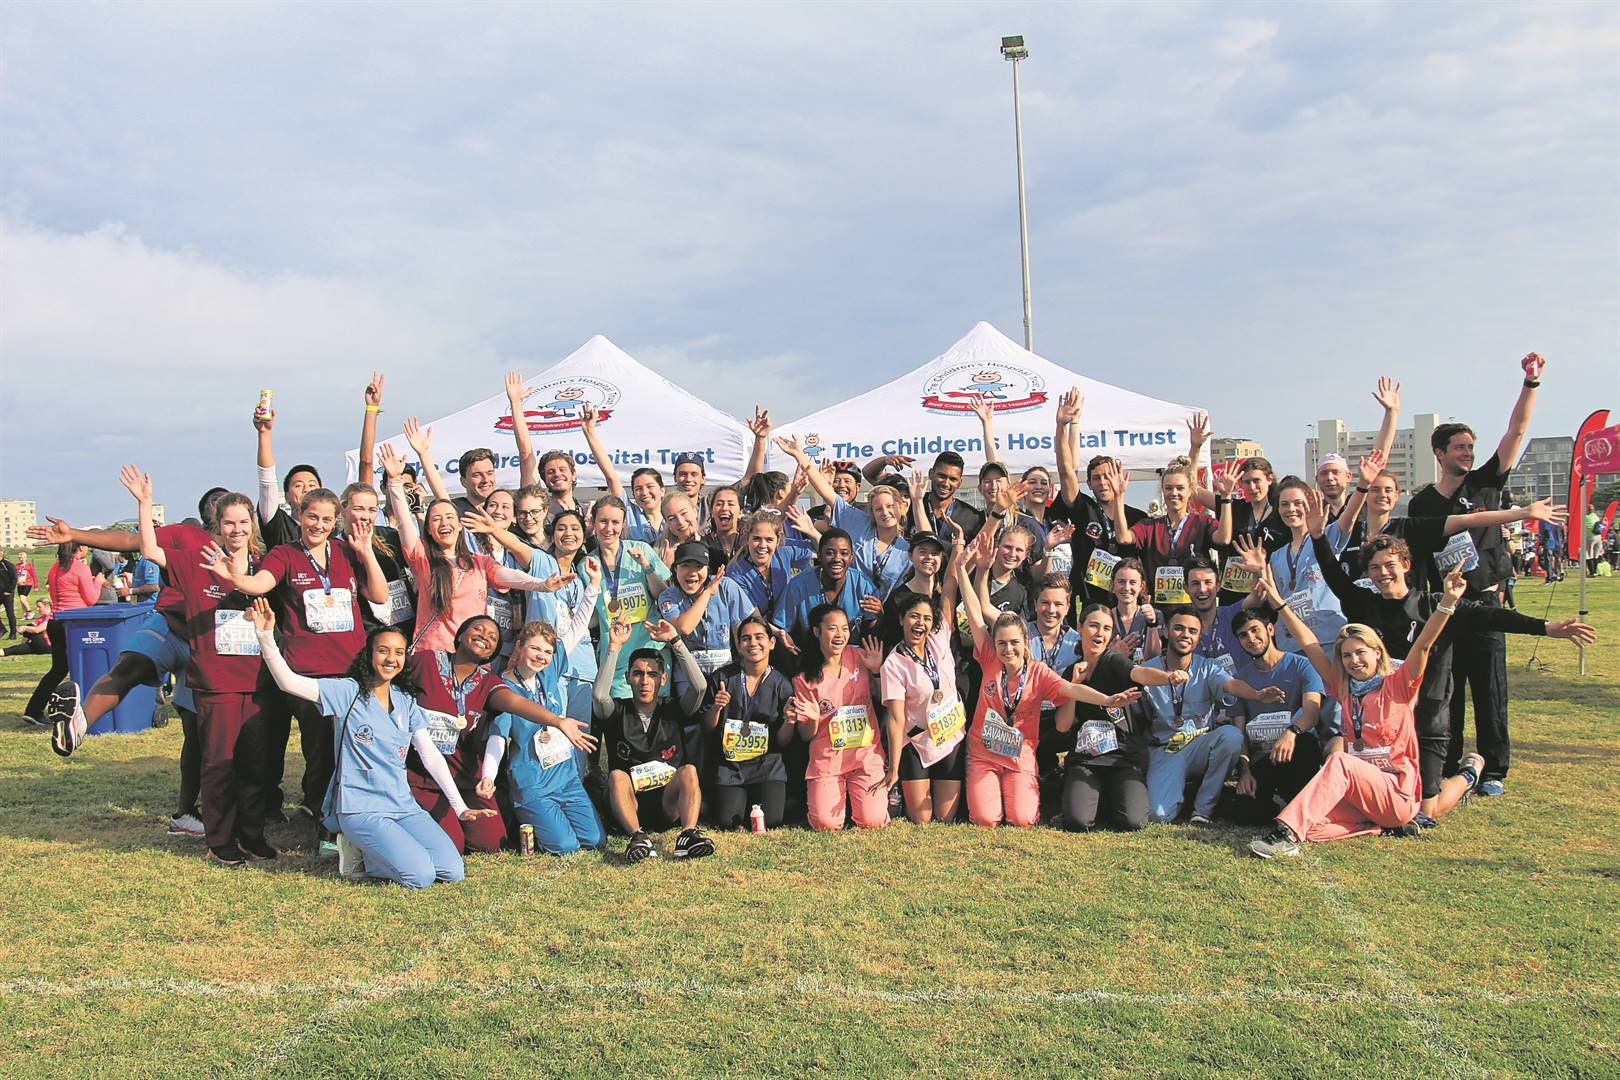 Members of the University of Cape Town Surgical Society and Western Cape Minister of Health Nomafrench Mbombo participated in UCT's Scrub Run on Sunday 15 September.  PHOTO: The Children's Hospital Trust